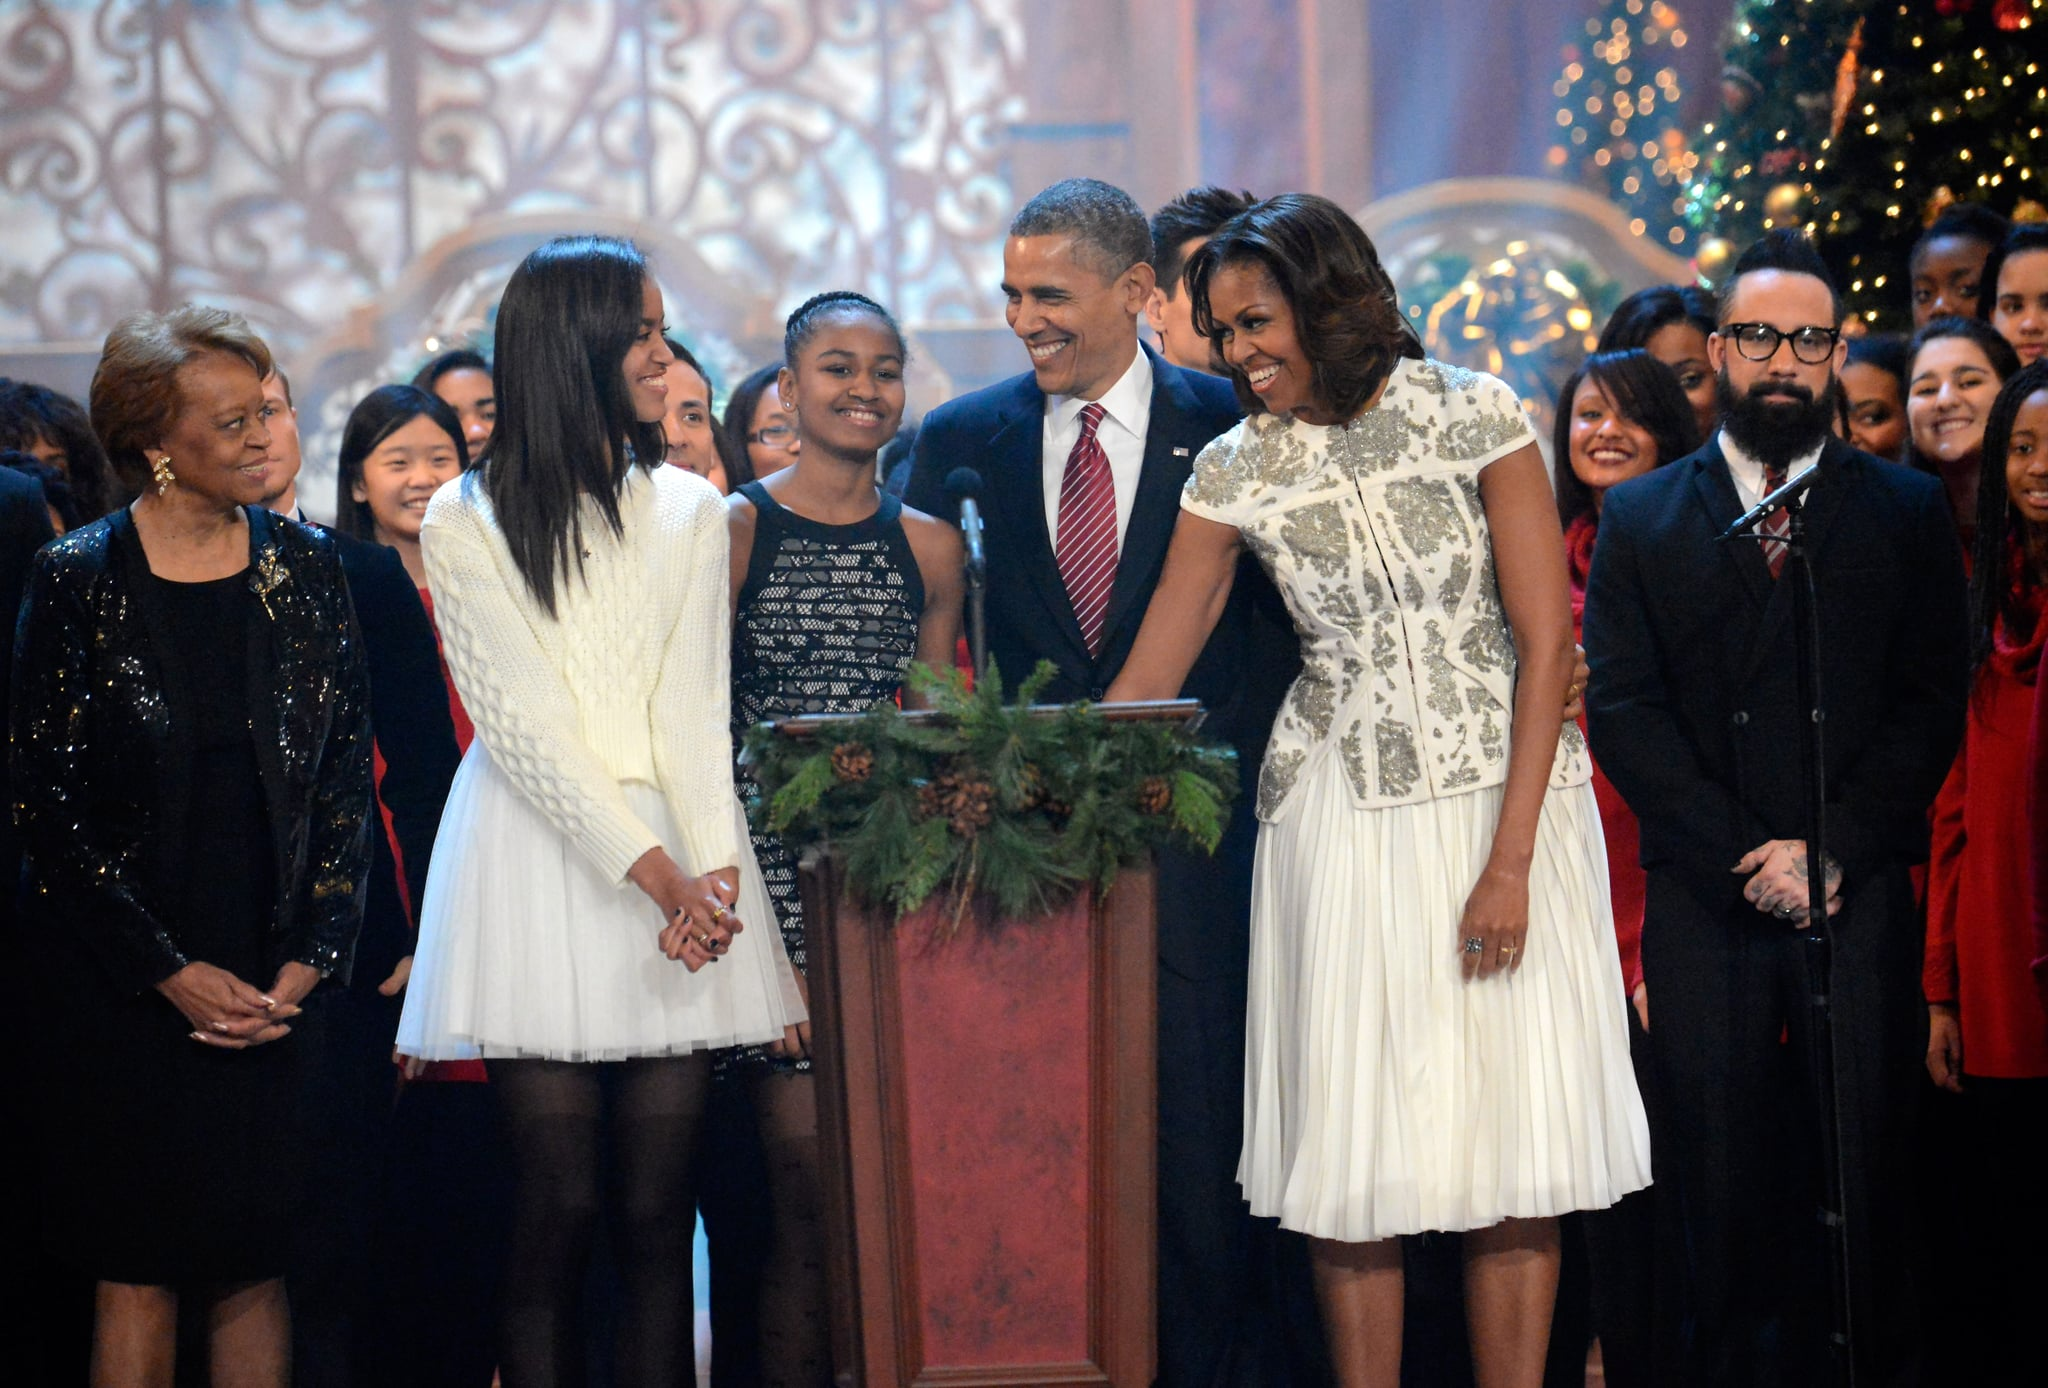 President Barack Obama and First Lady Michelle Obama were all smiles at the event.